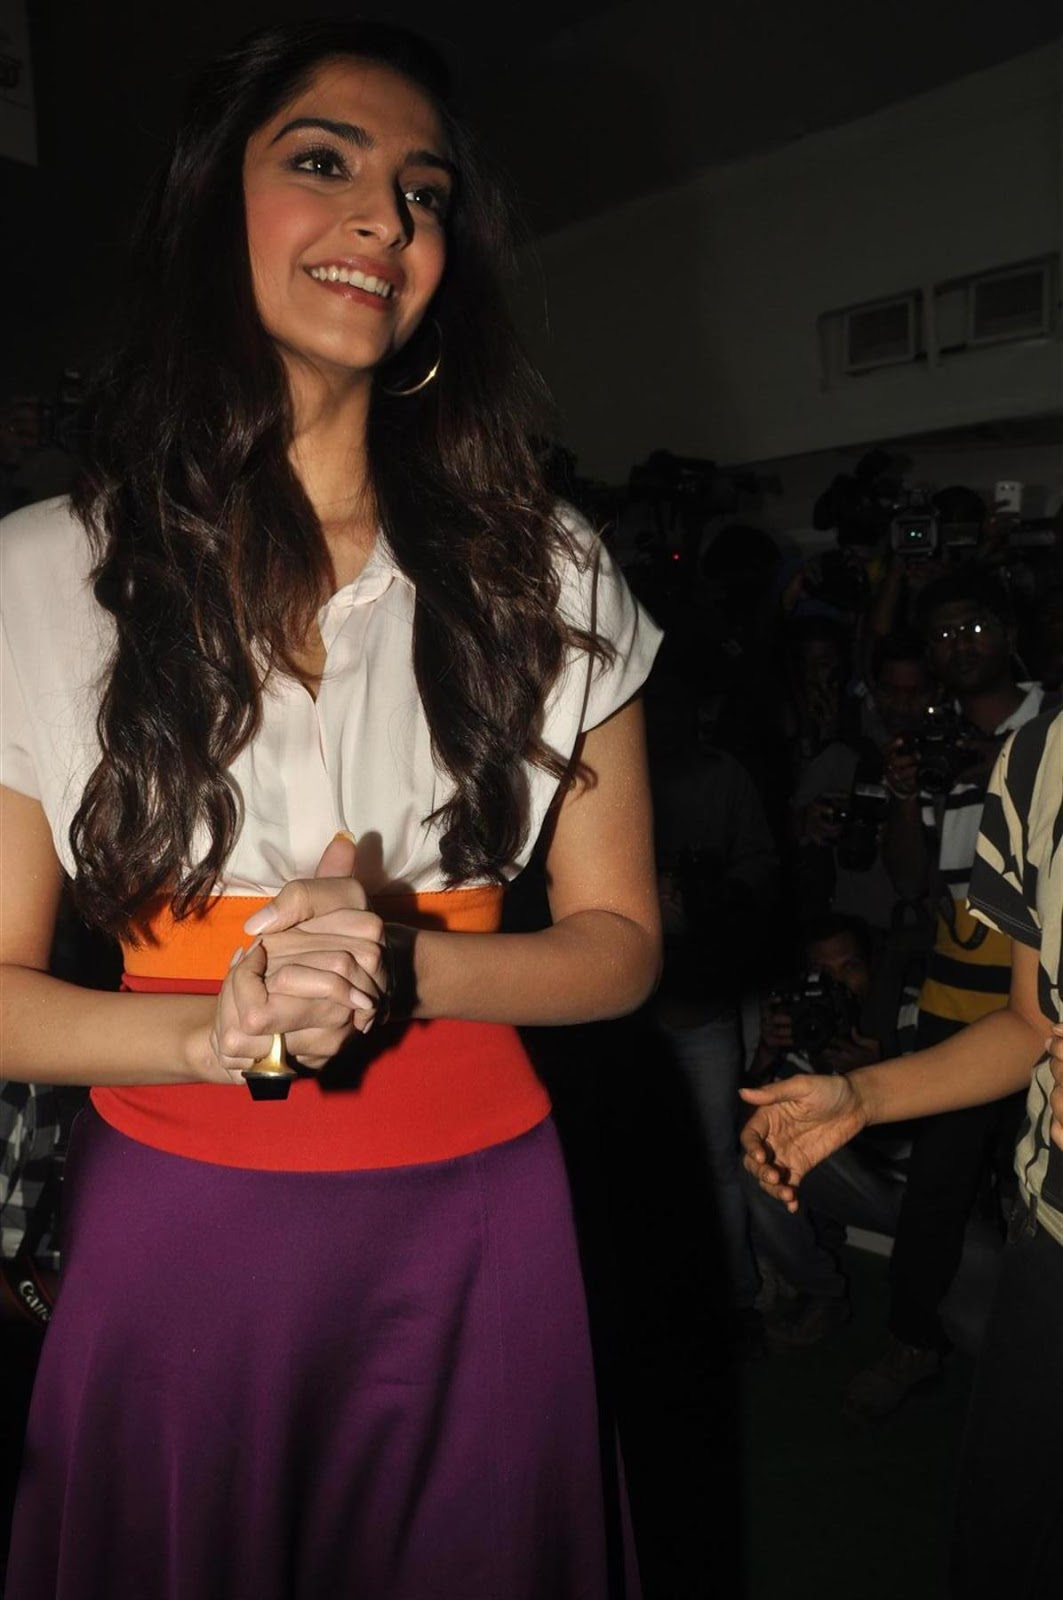 Sonam Kapoor Looks Super Cute At The Inauguration Of Mumbai Marathon 'Get Active Expo' 2012